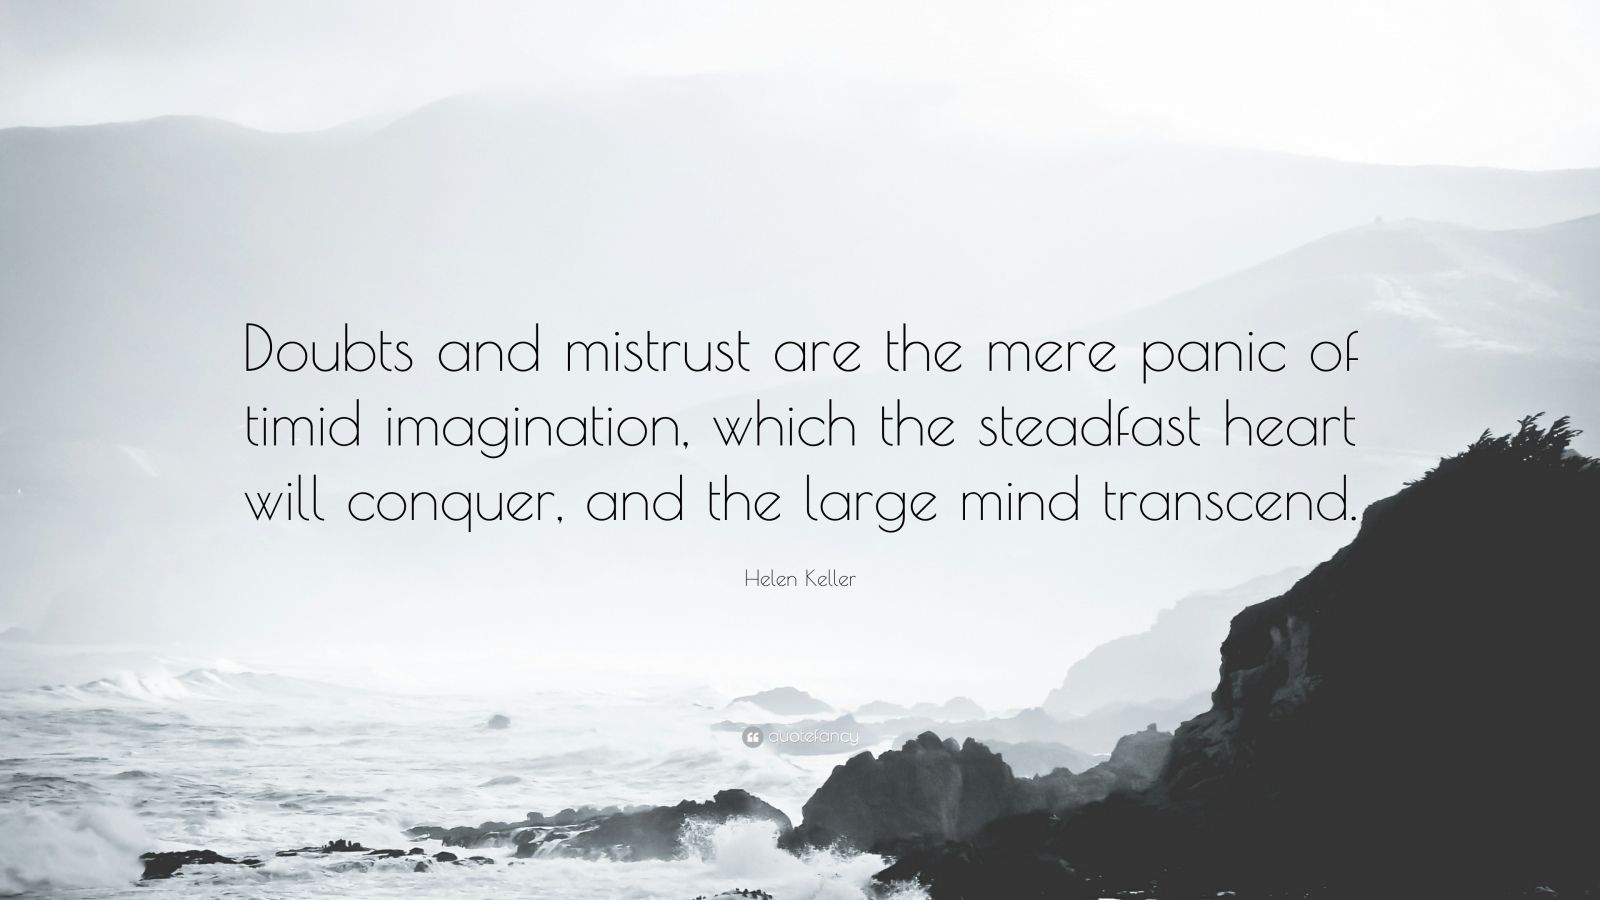 """Helen Keller Quote: """"Doubts and mistrust are the mere panic of timid imagination, which the steadfast heart will conquer, and the large mind transcend."""""""